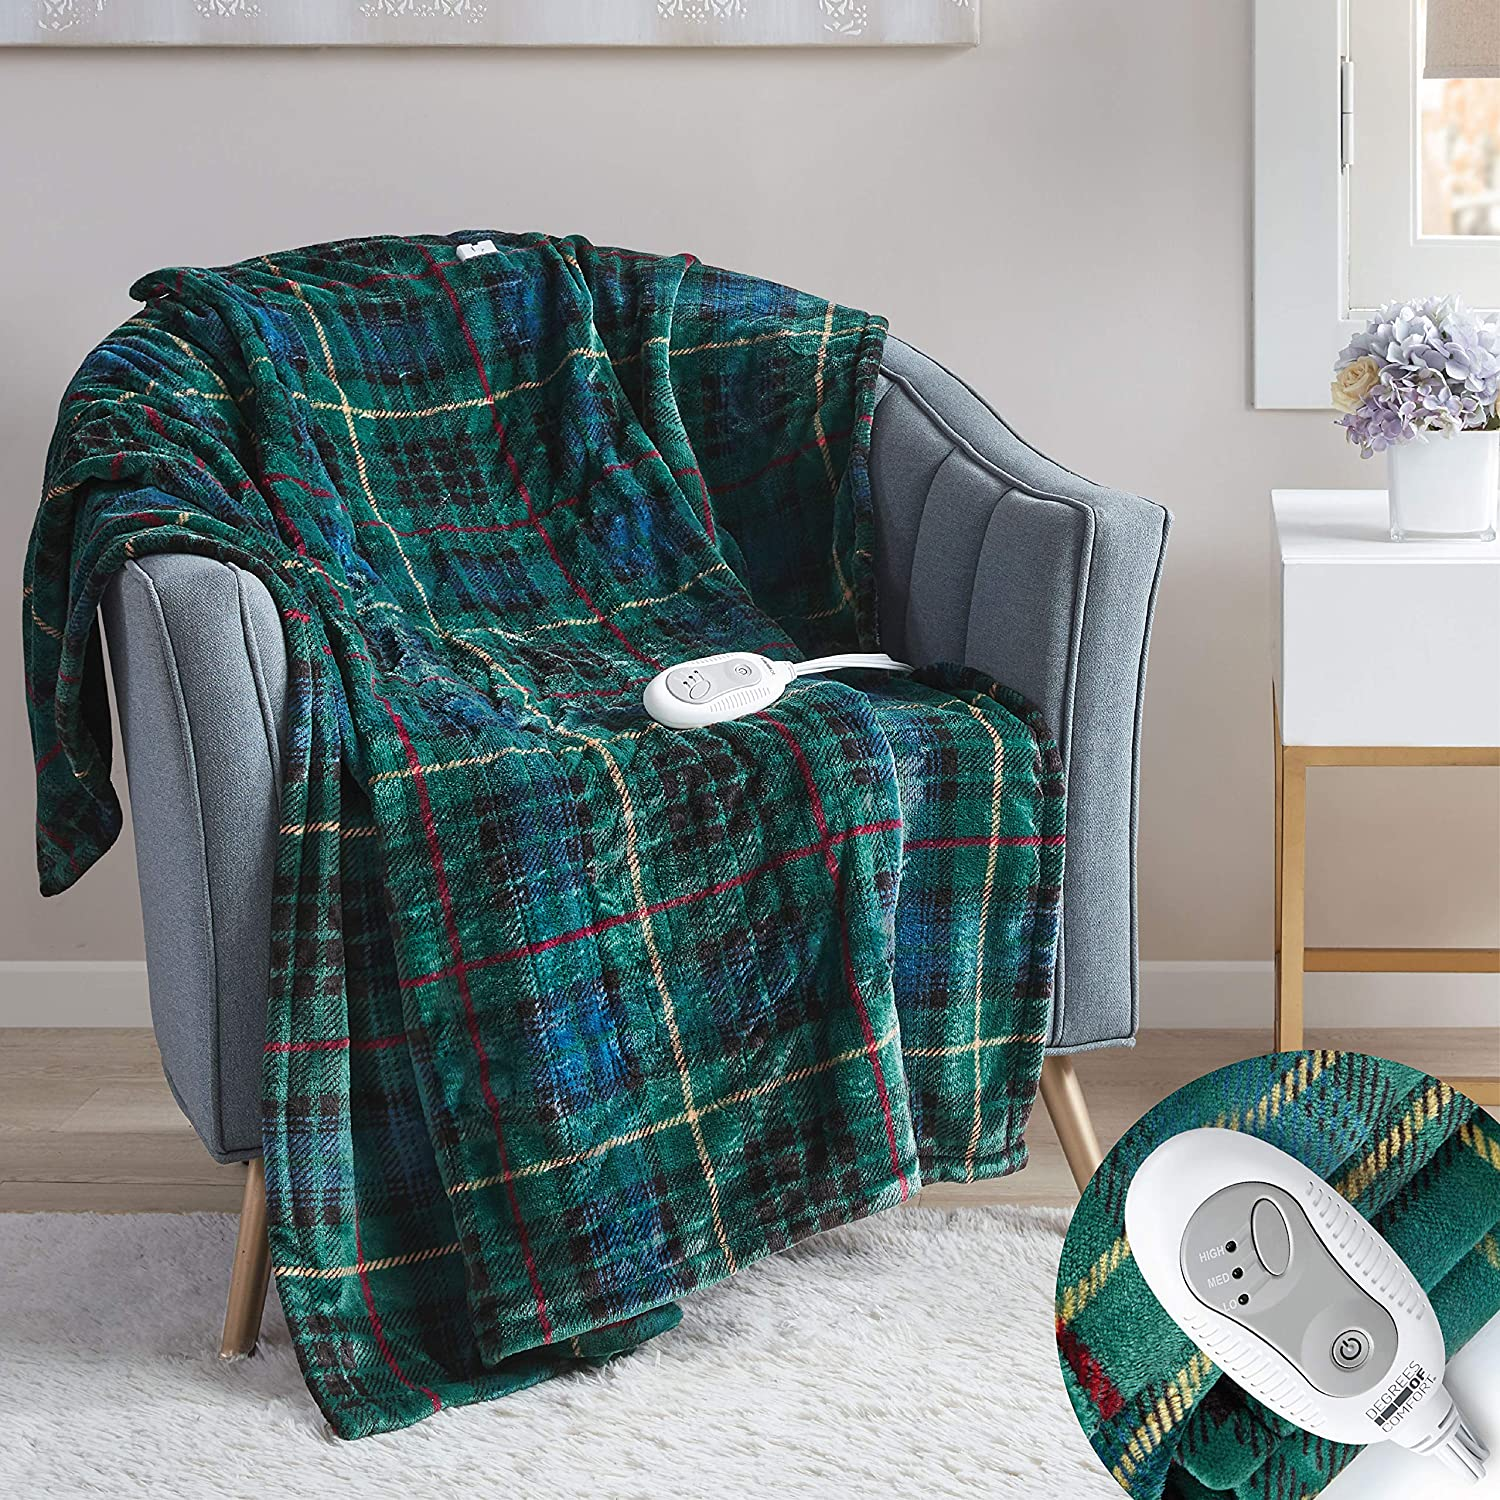 Degrees of Comfort Electric Heated Throw Blanket | Fast Heating, Plush Microlight, UL Certified & Low EMF Radiation – 6ft Cord and 3ft Controller Cable 3 Heat Settings Easy to Wash 50x60 Green Plaid